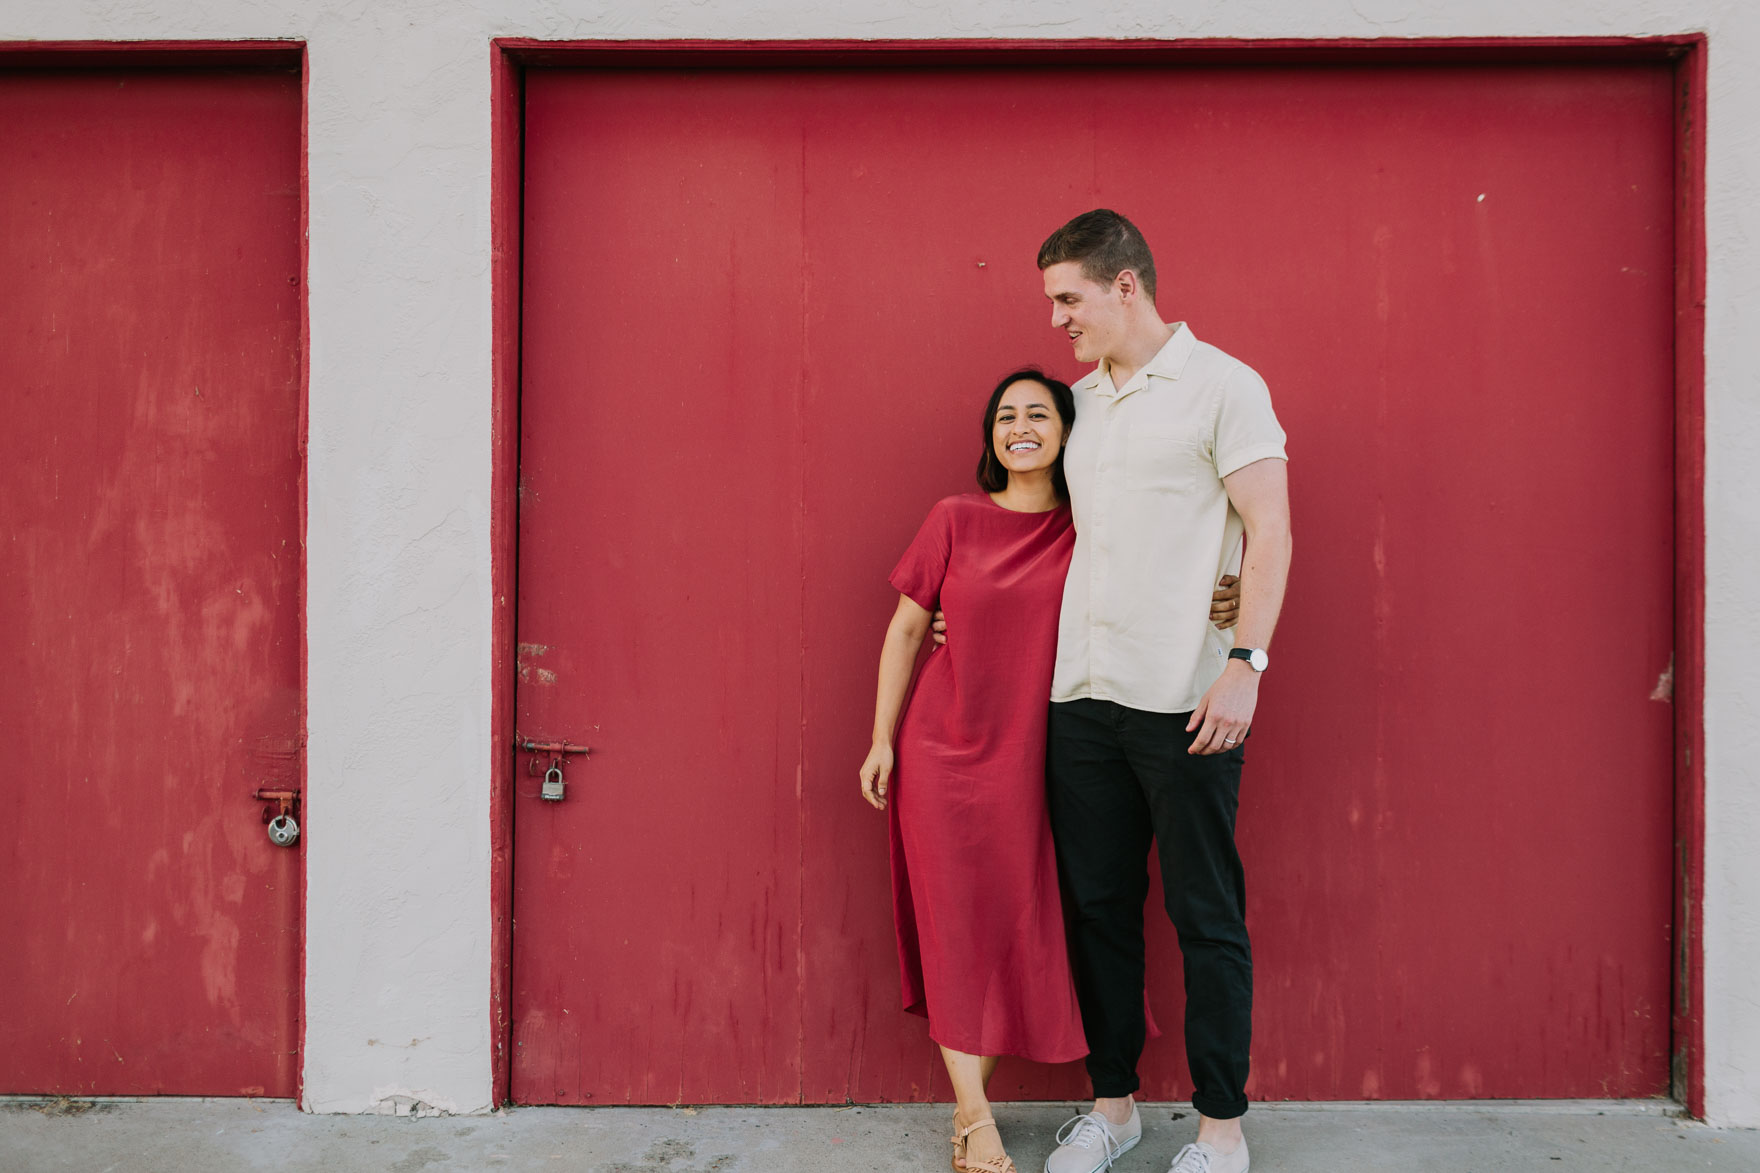 Vegan Tacos and Vibrant Love – Photo by Let's Frolic Together